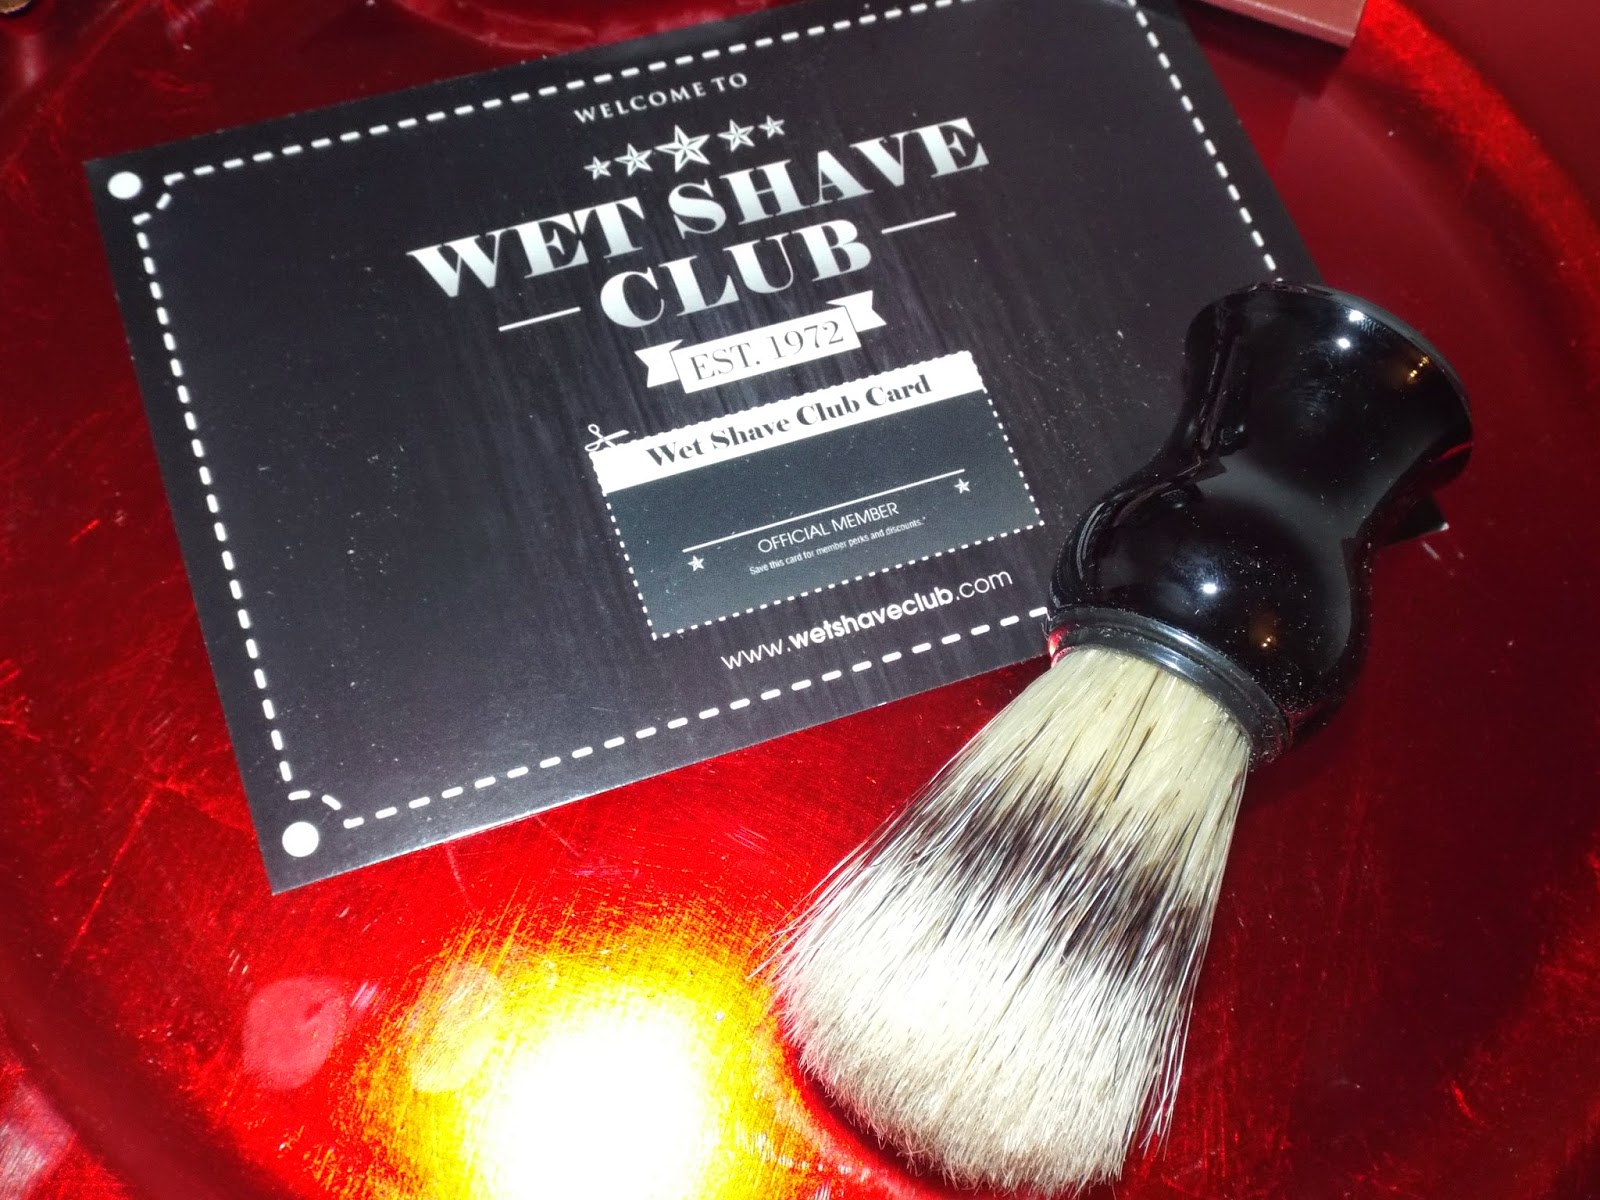 Wet Shave Club: Shaving Brush